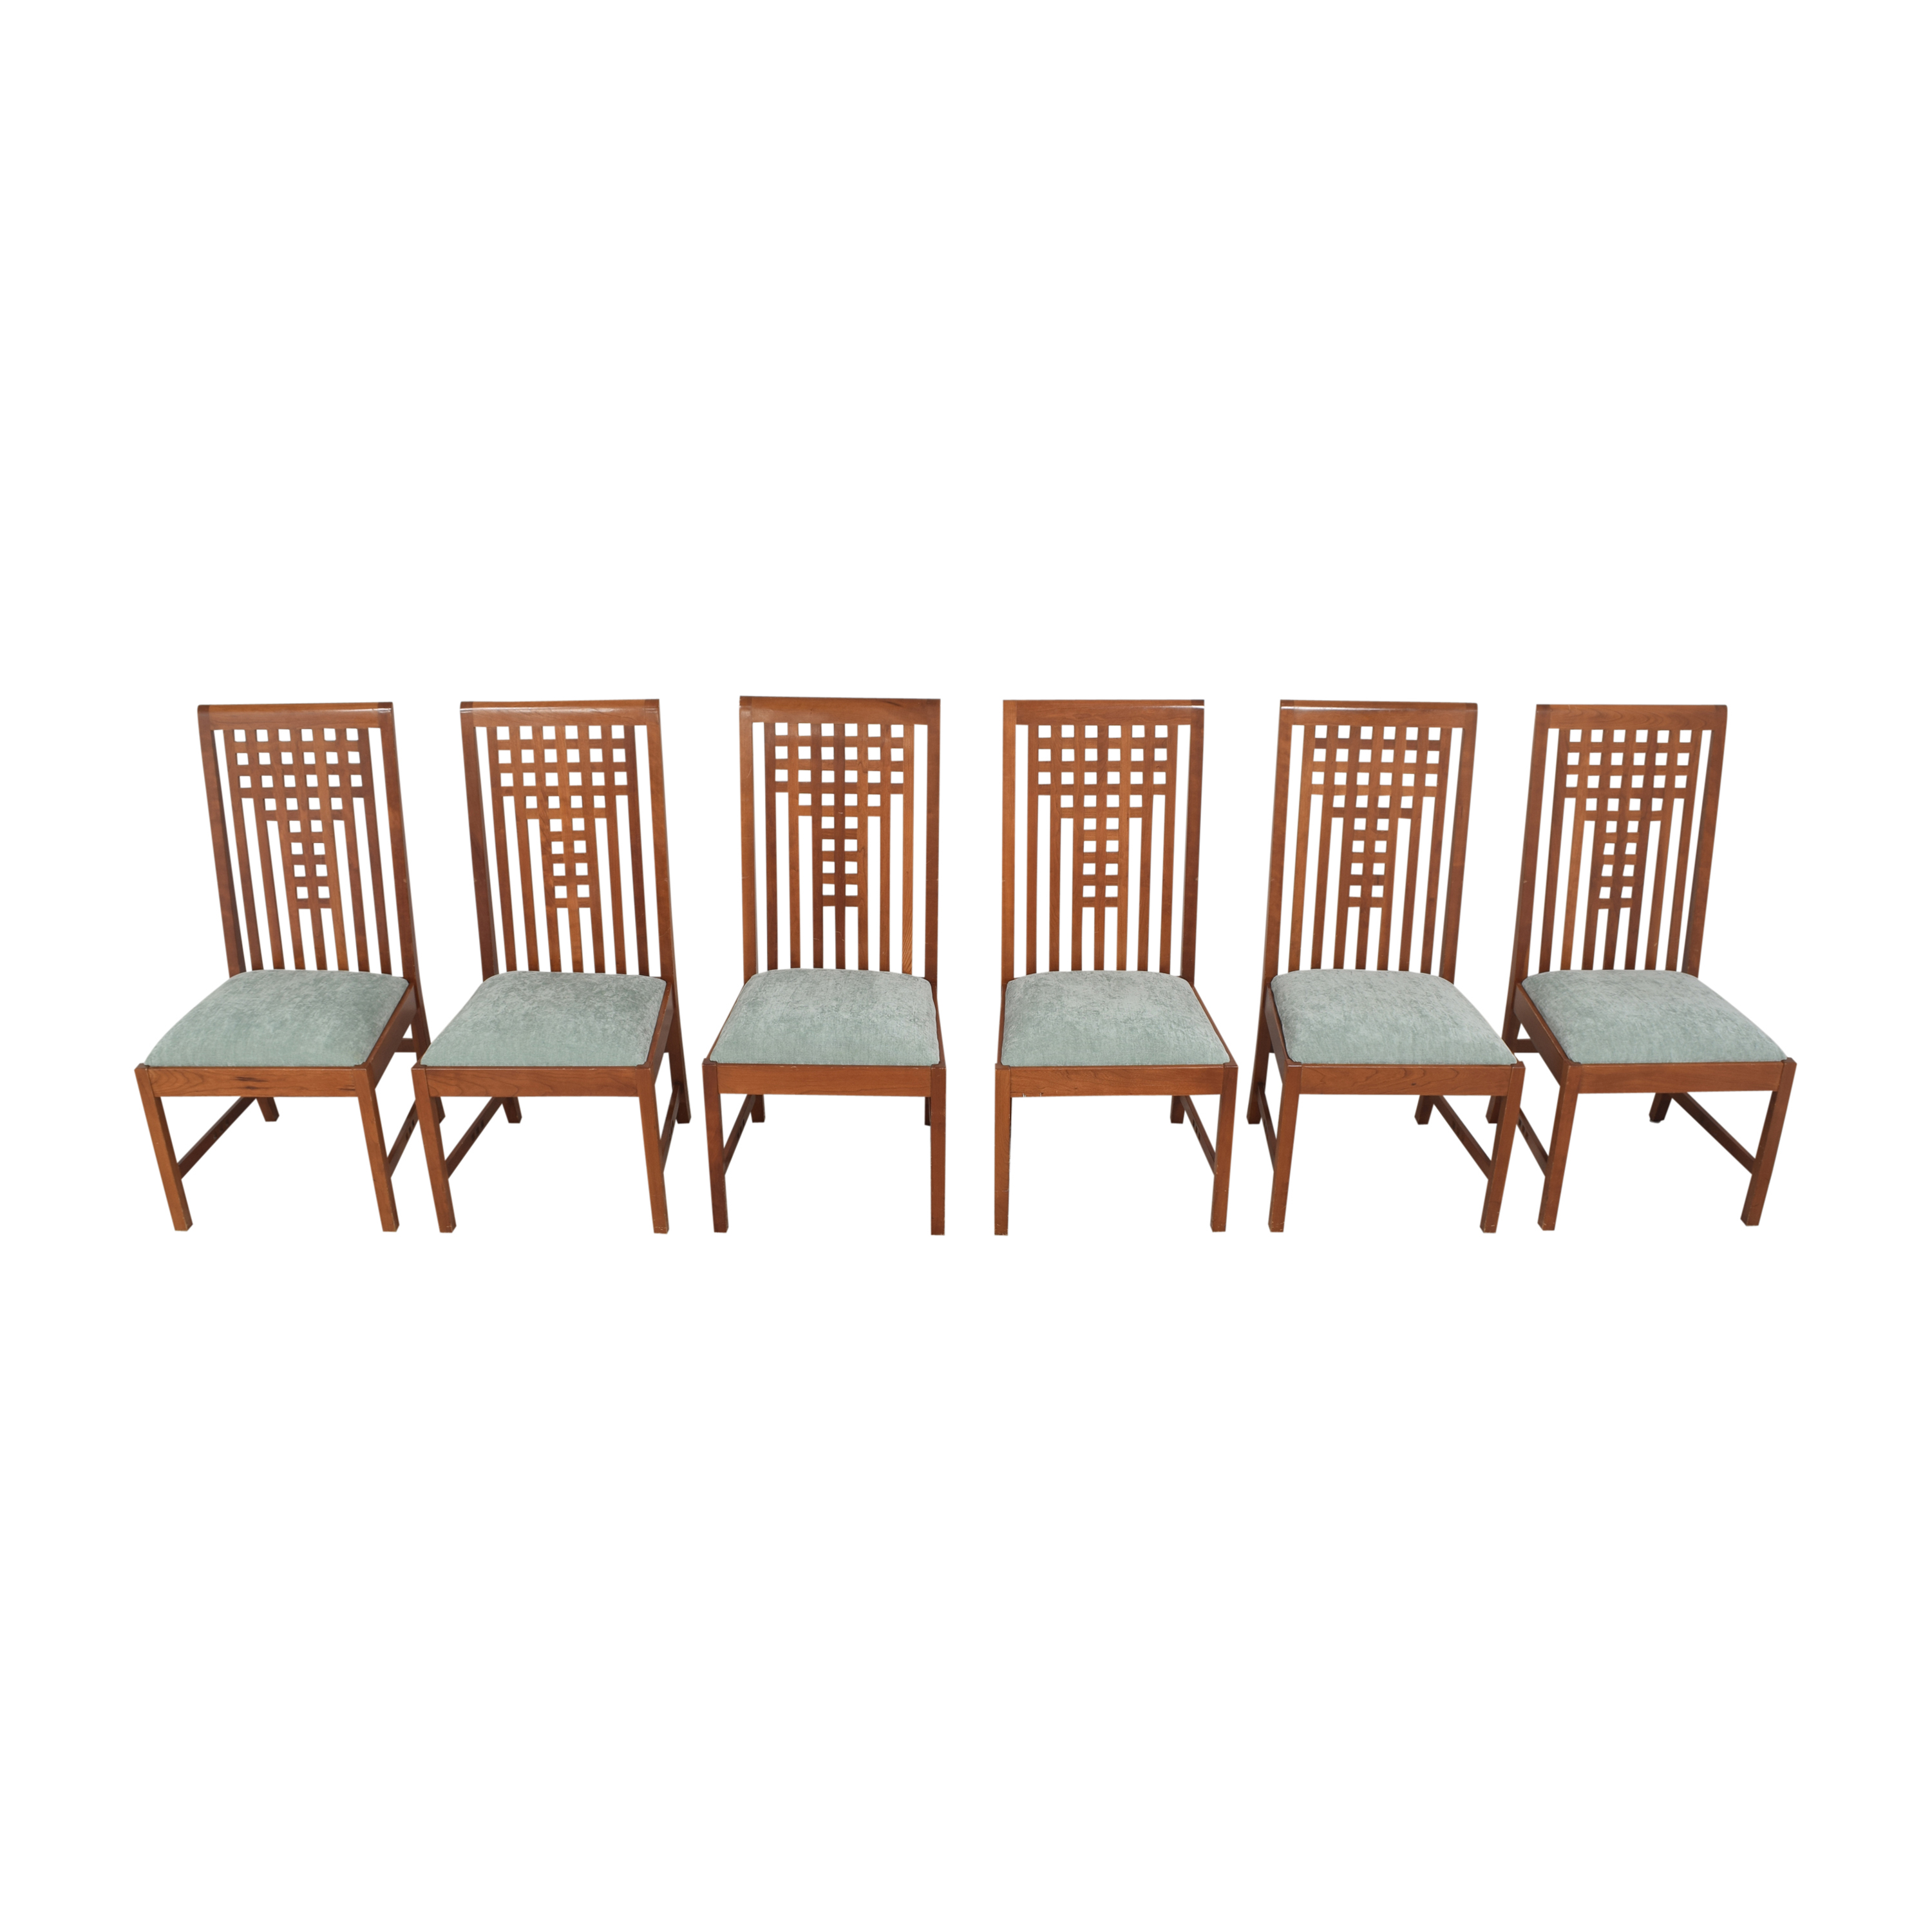 Stickley Furniture Stickley Furniture 21st Century Lattice Dining Side Chairs ma